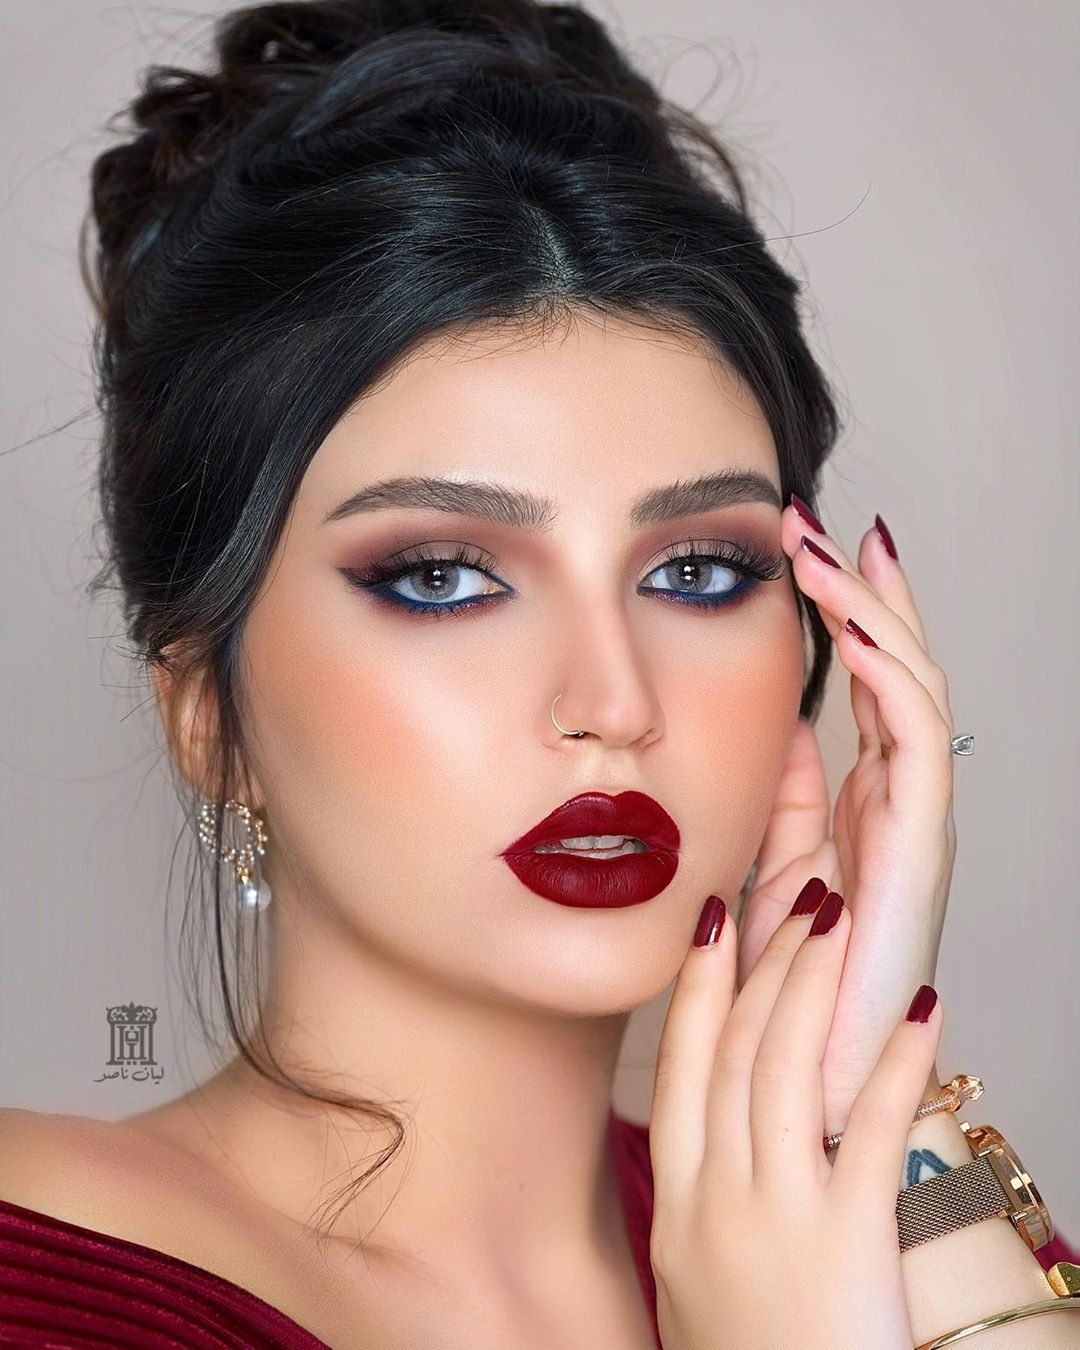 Pin By Hnoreen On Makeup مكياج In 2020 Beauty Make Up Makeup